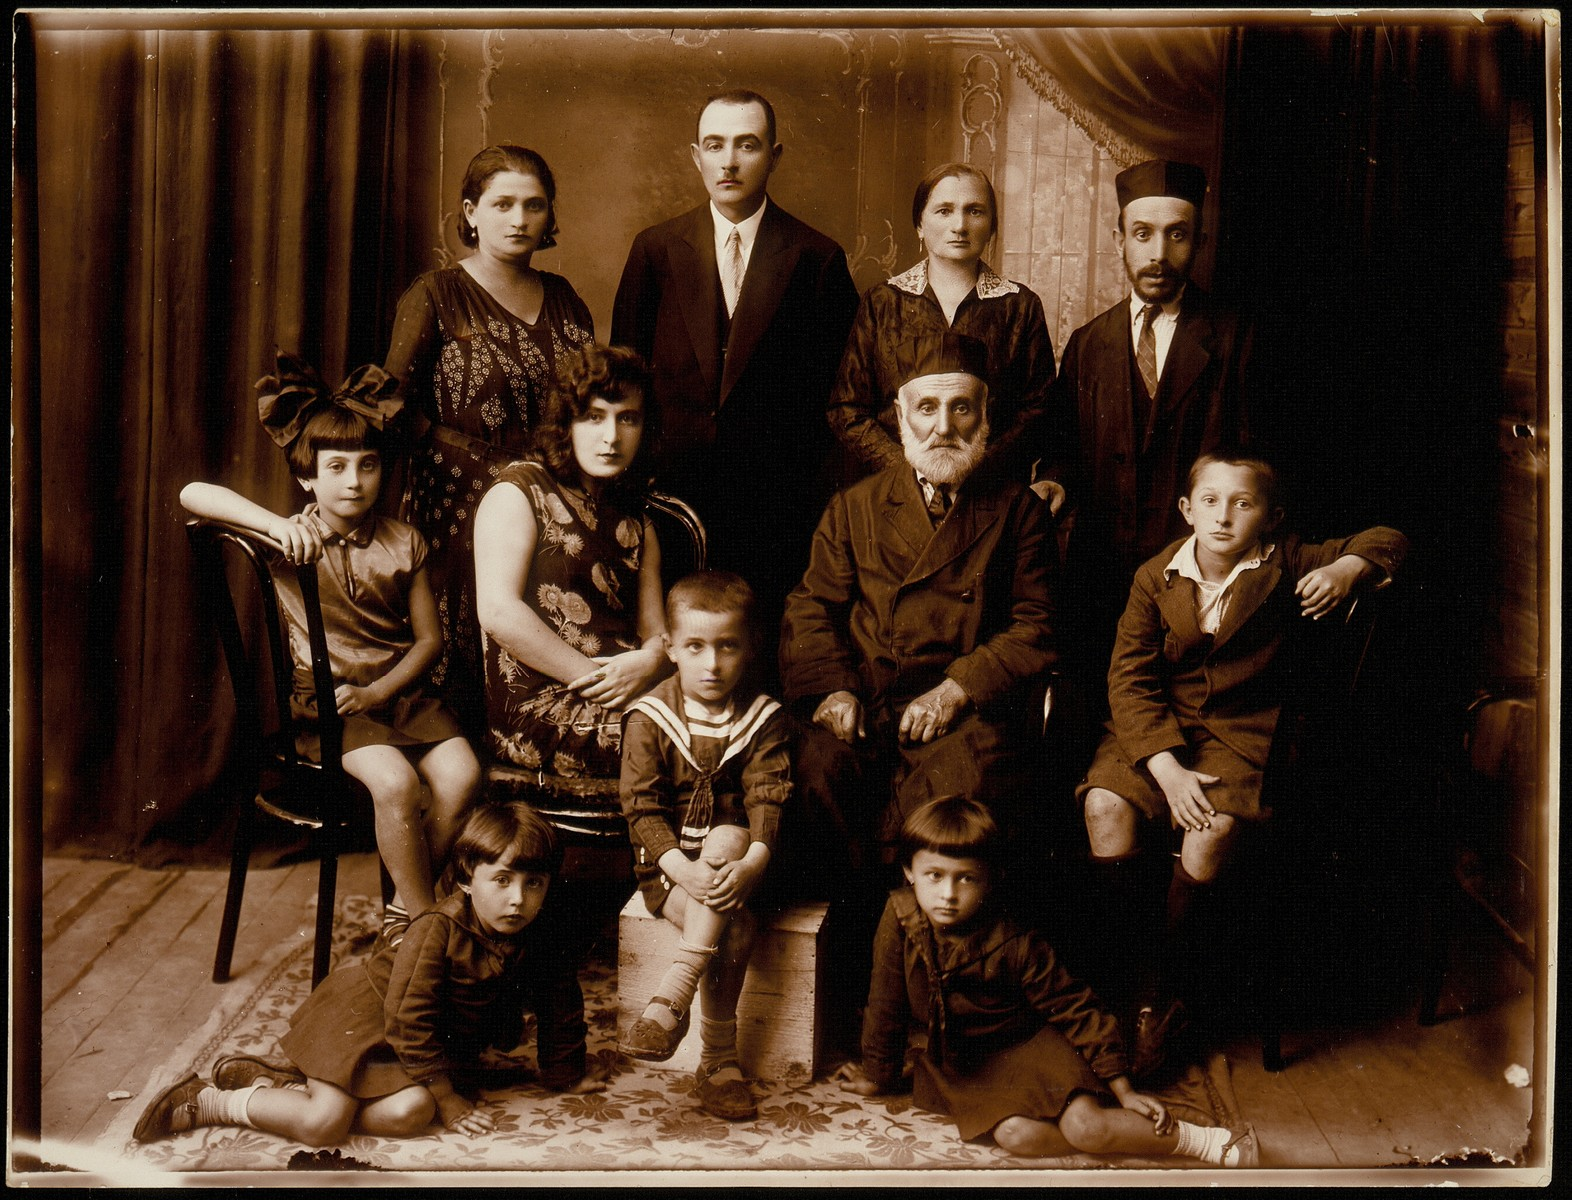 Studio portrait of the extended Zlotnik family in Eisiskes.  The photograph was taken on the occasion of the departure of Dora Zlotnik for Palestine.  Pictured in the back row from right to left are: Yitzhak and Hayya Fradl (Zlotnik) Broide, and Honeh and Bluma (Zlotnik) Michalowski. Seated in the middle row from right to left are: Yankele Sheshko, Reb Shlomo Zlotnik, Dora Zlotnik and Sarah Michalowski.  Seated in the front row from right to left are: ? Sheshko, Moshe Sheshko and Zelda-Bluma Michalowski.  Most of the family was killed by the Germans during the September 1941 mass shooting action in Eisiskes.